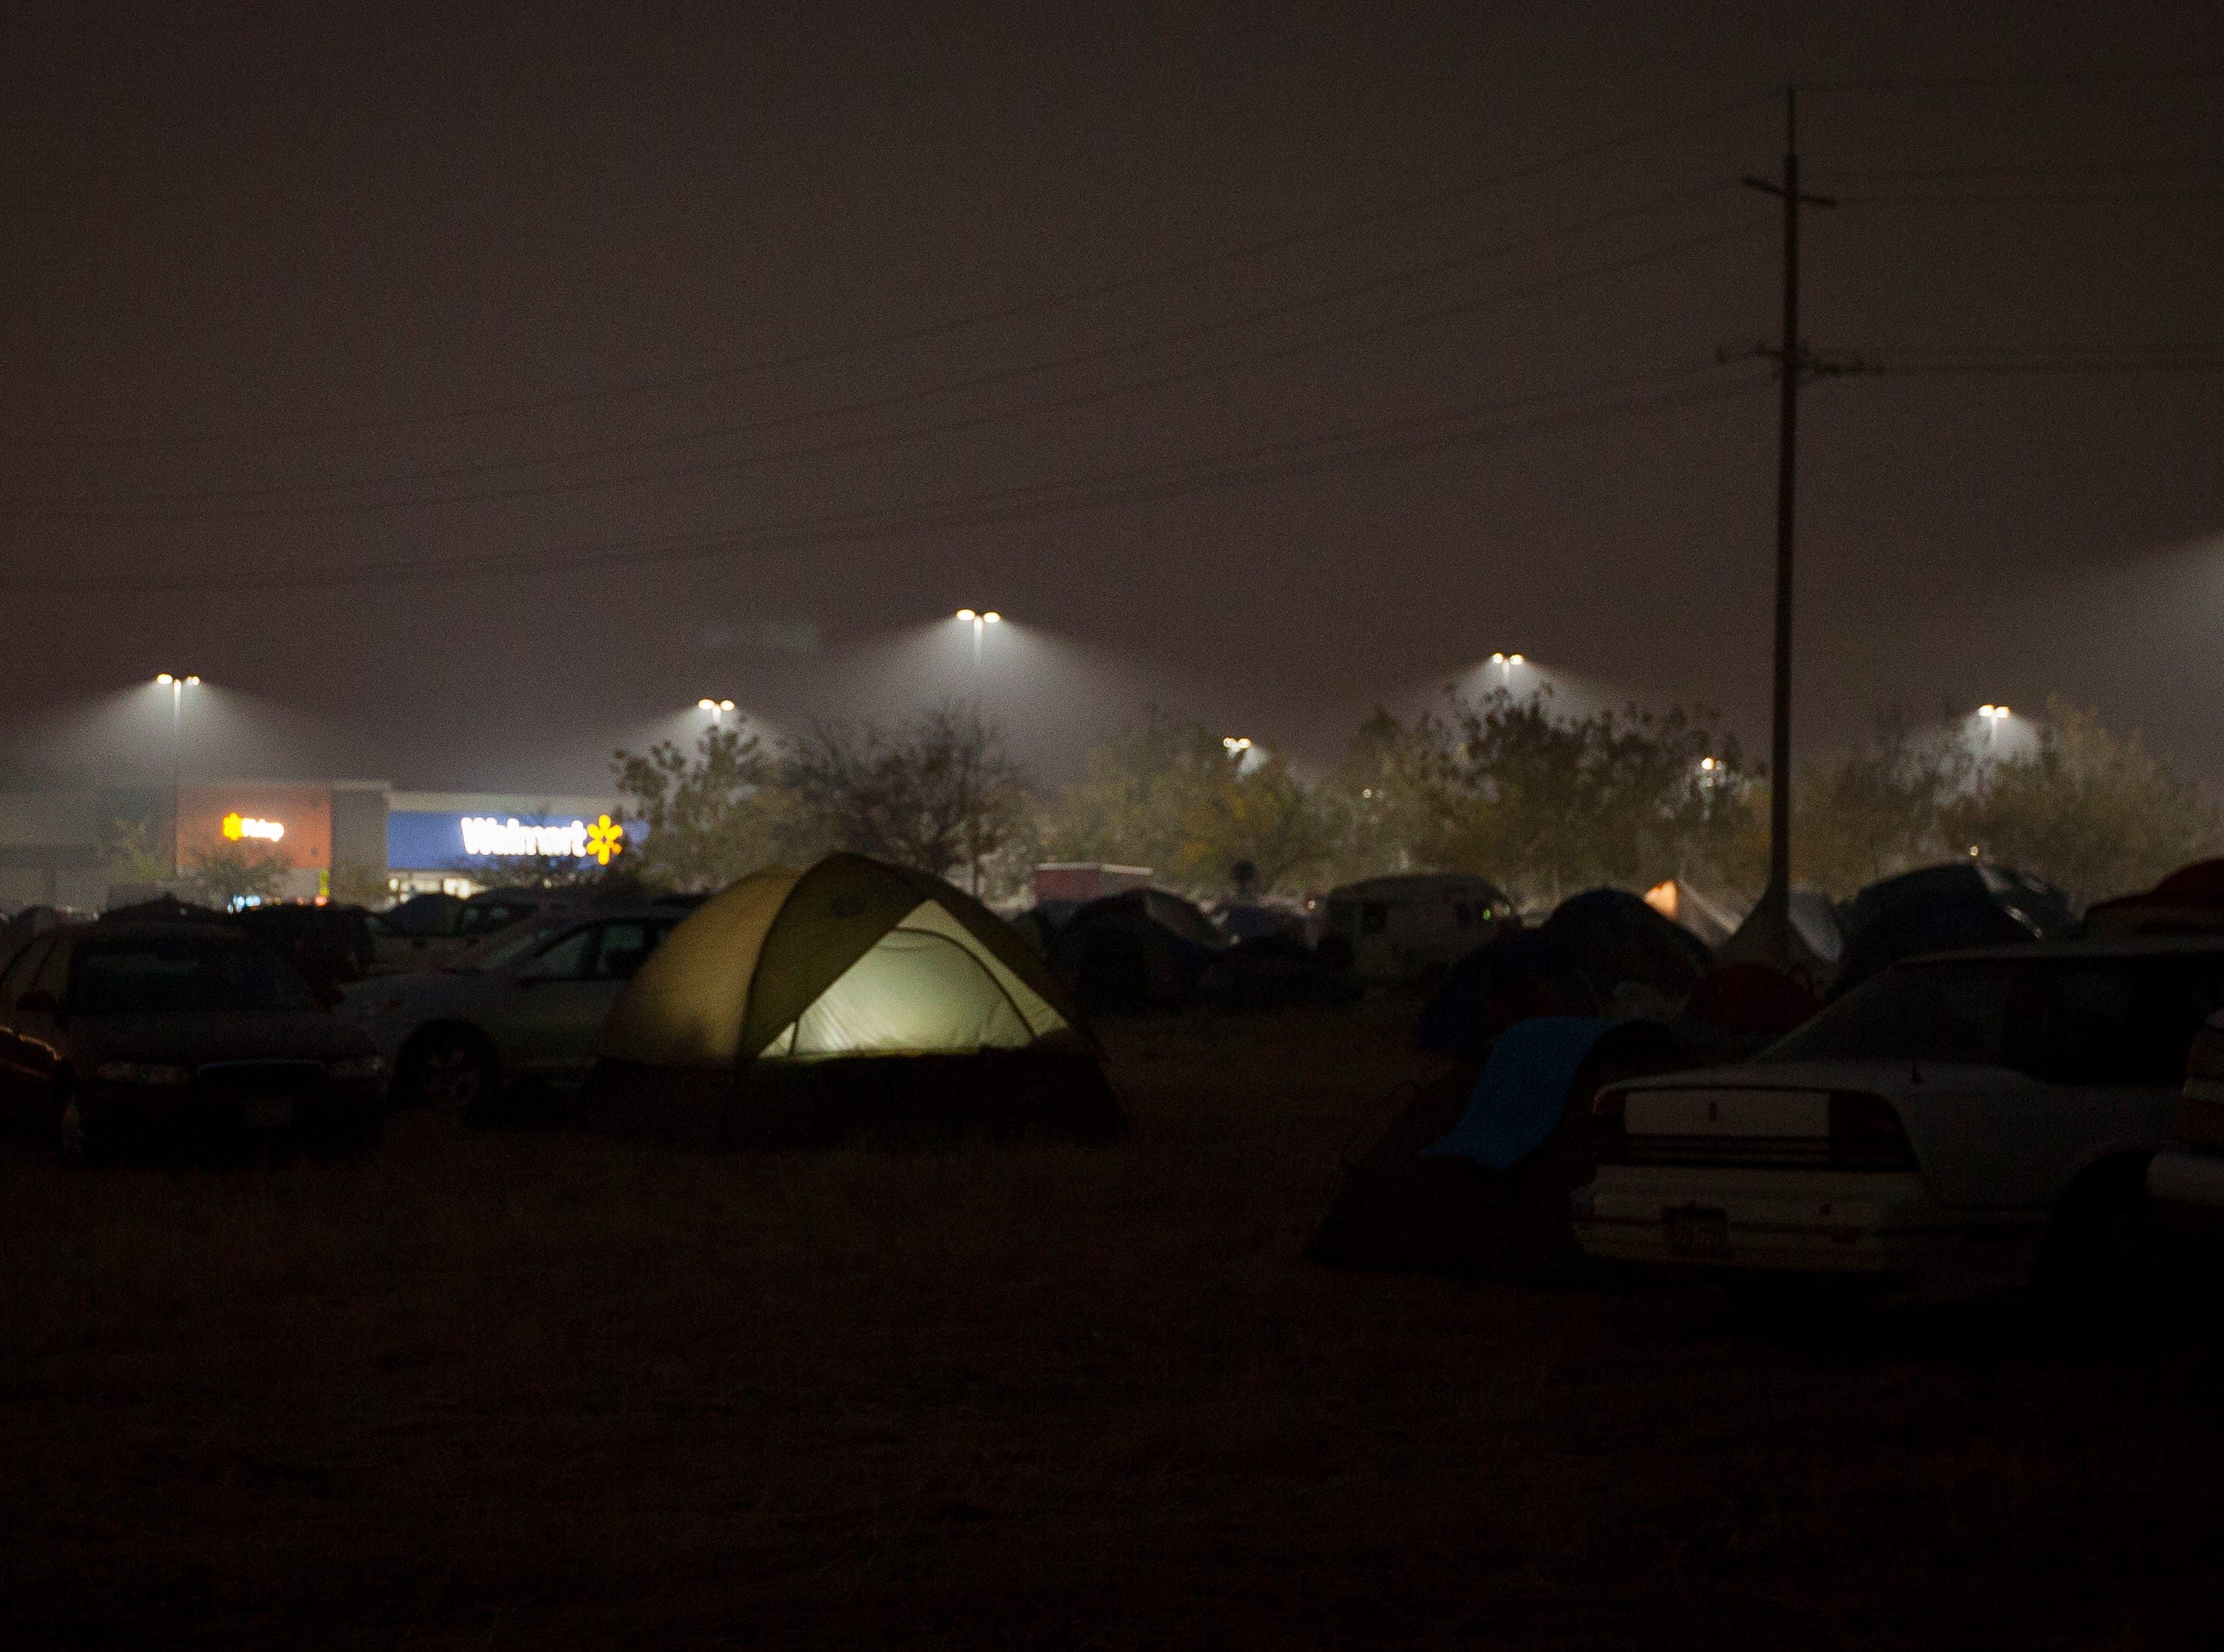 A tent glows from a light inside as people live in a make-shift tent compound next to the Walmart in Chico, CA. The parking lot and field next to it have become a refuge for evacuees of the Camp Fire which devastated Paradise. Officials are closing the area on Sunday and working to find a more sustainable housing solution for those affected by the fire.